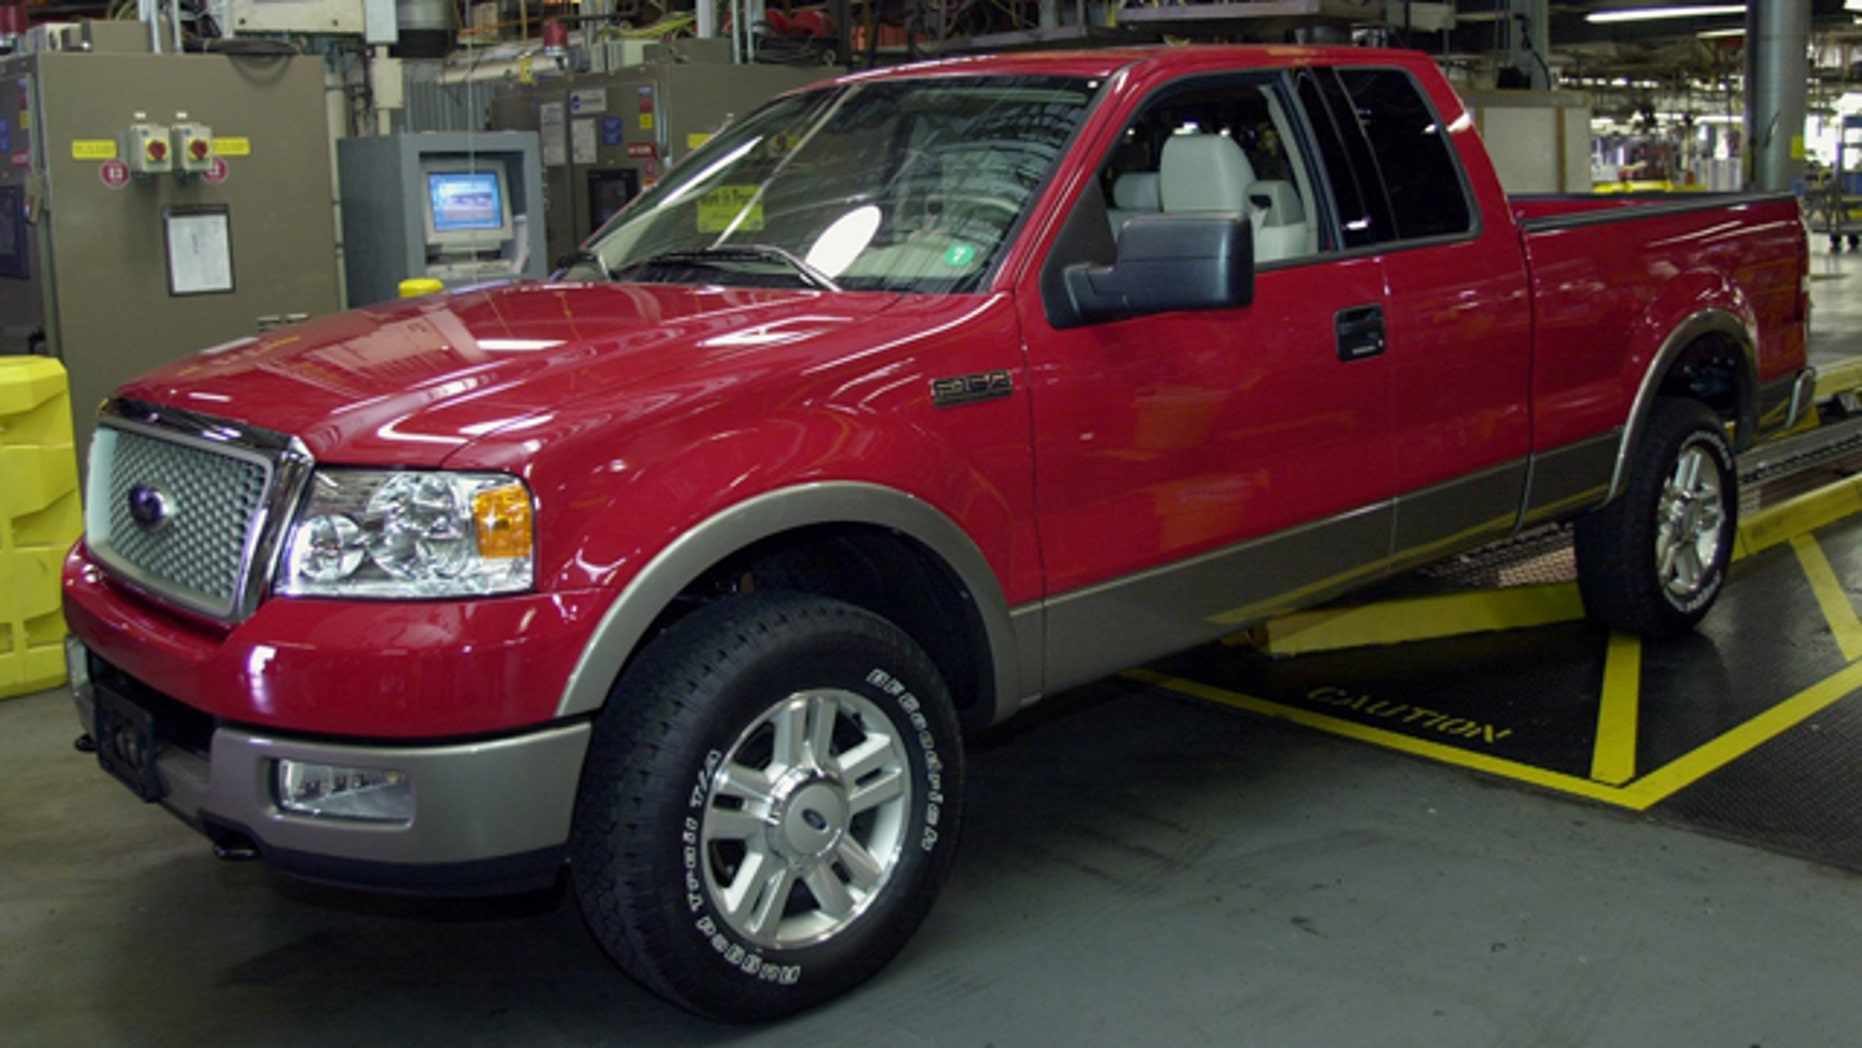 FILE - In this June 10, 2003 file photo, the first of Ford's 2004 F-150 trucks waits to roll off the assembly line at the Norfolk, Va., assembly plant. Ford is recalling more than a million pickups trucks because their gas tanks can fall off and cause fires. The recall involves certain 1997 through 2004 Ford F-150 models, as well as some 1997 through 1999 model year F-250 pickups. Also affected are Lincoln Blackwood pickups from the 2002 and 2003 model years. (AP Photo/Gary C. Knapp, File)